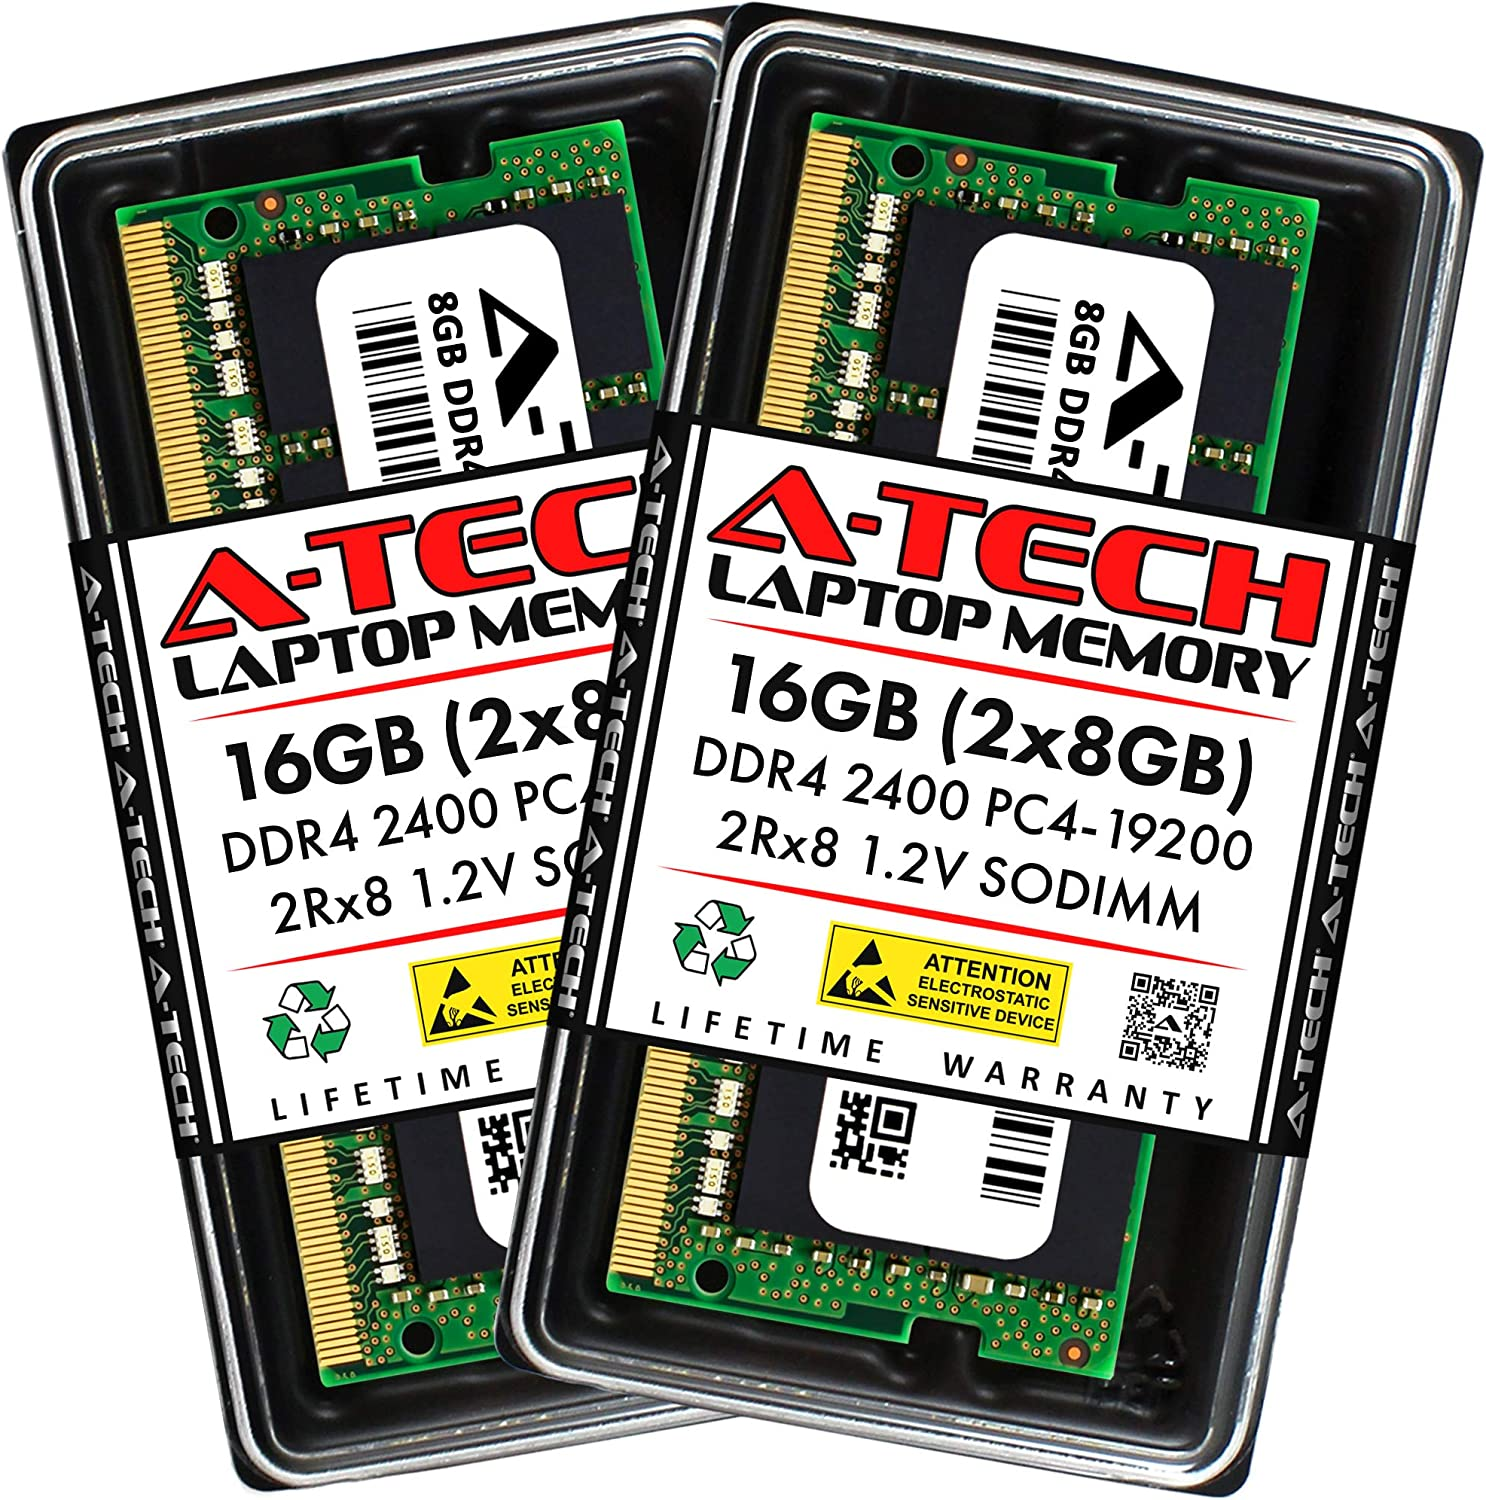 A-Tech 16GB (2x8GB) DDR4 2400MHz SODIMM PC4-19200 2Rx8 Dual Rank 260-Pin CL17 1.2V Non-ECC Unbuffered Notebook Laptop RAM Memory Upgrade Kit